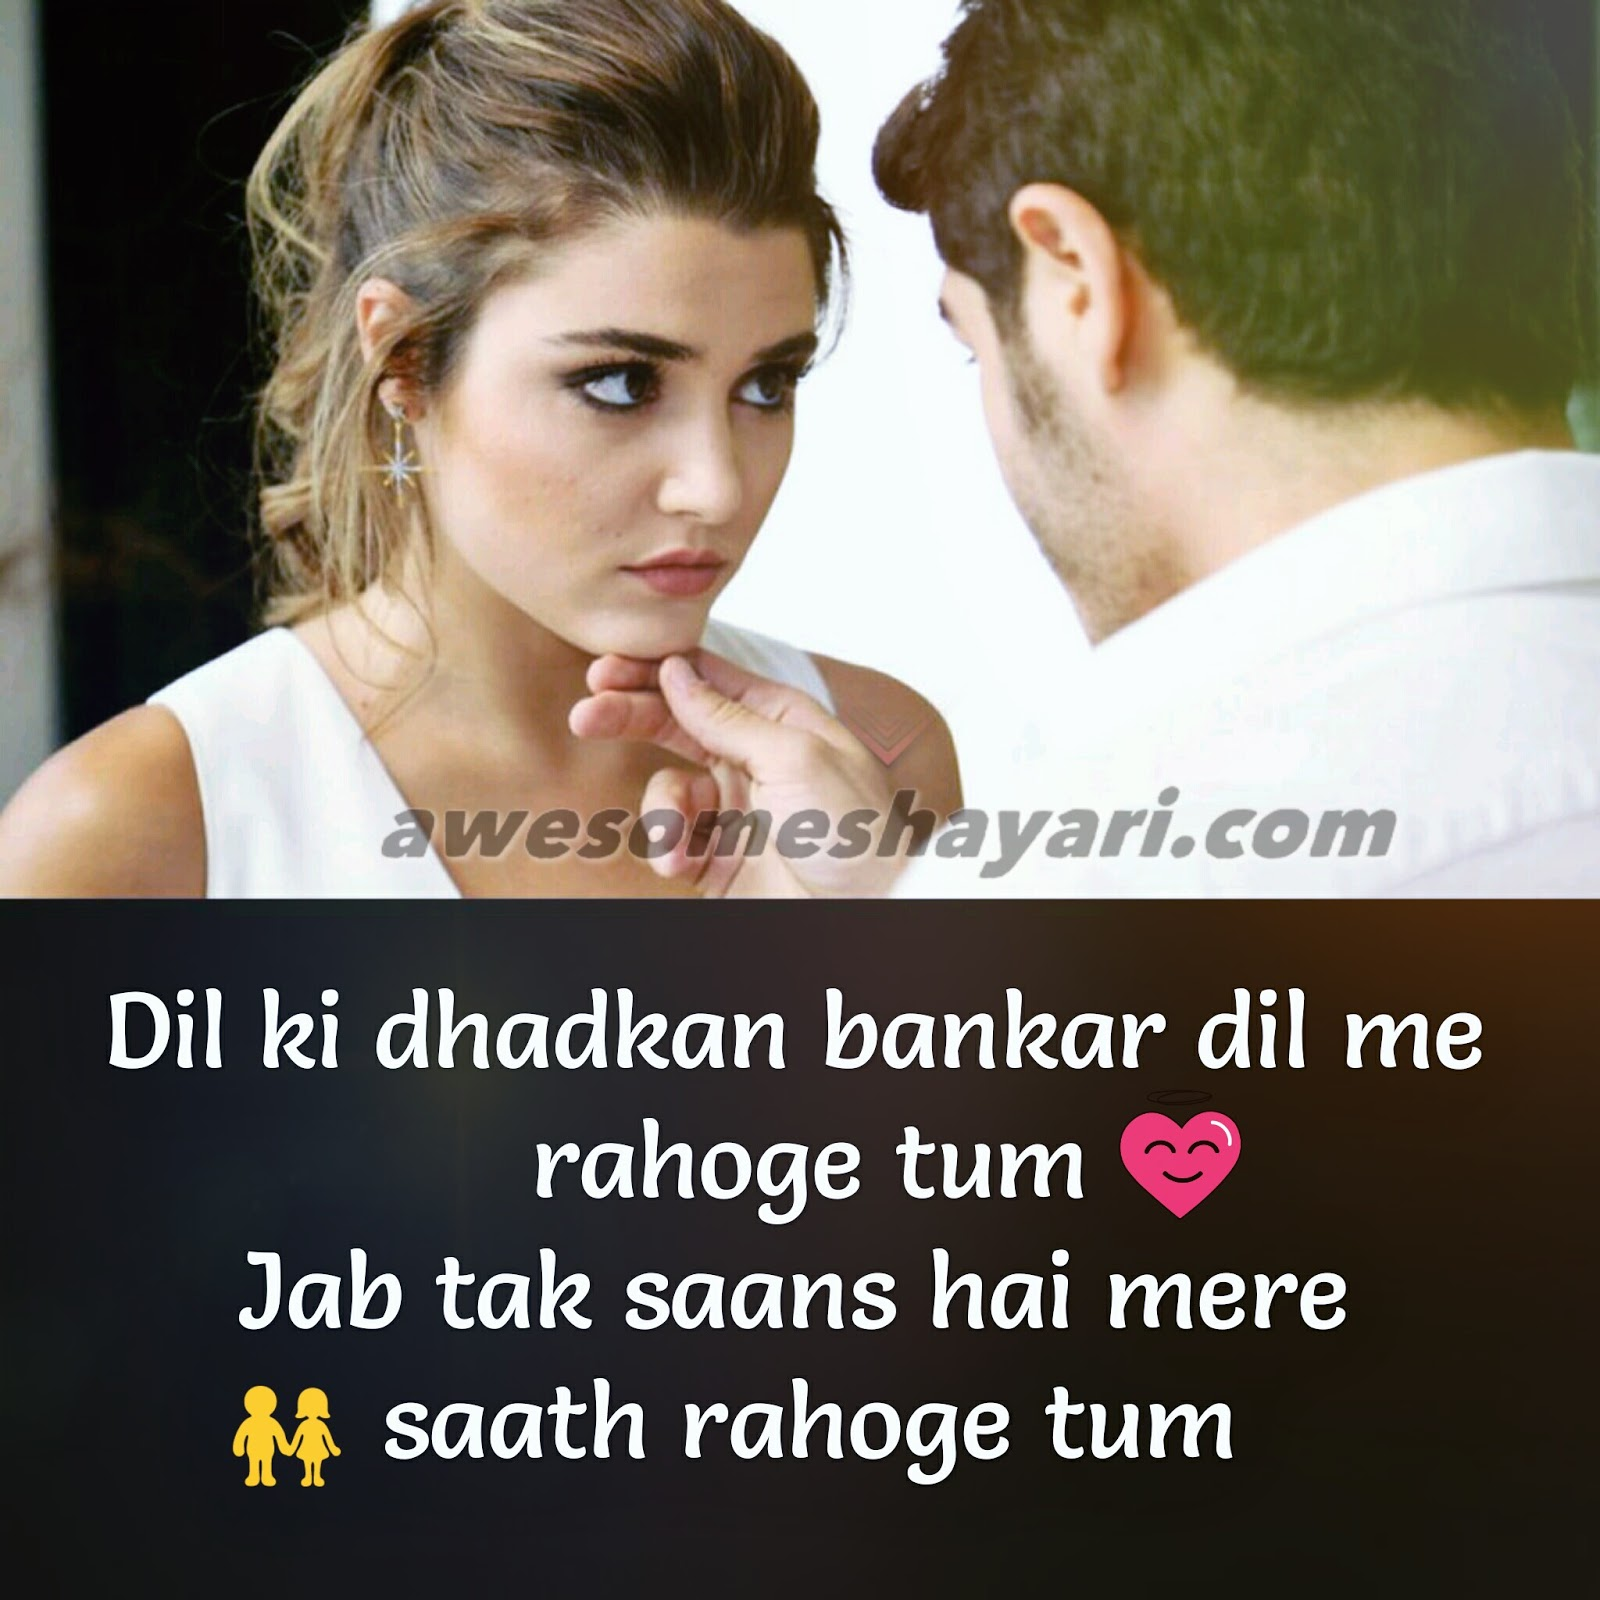 Koi Puche Mere Dil Se Song Download: True Love Shayari Images For Facebook & Whatsapp Dp